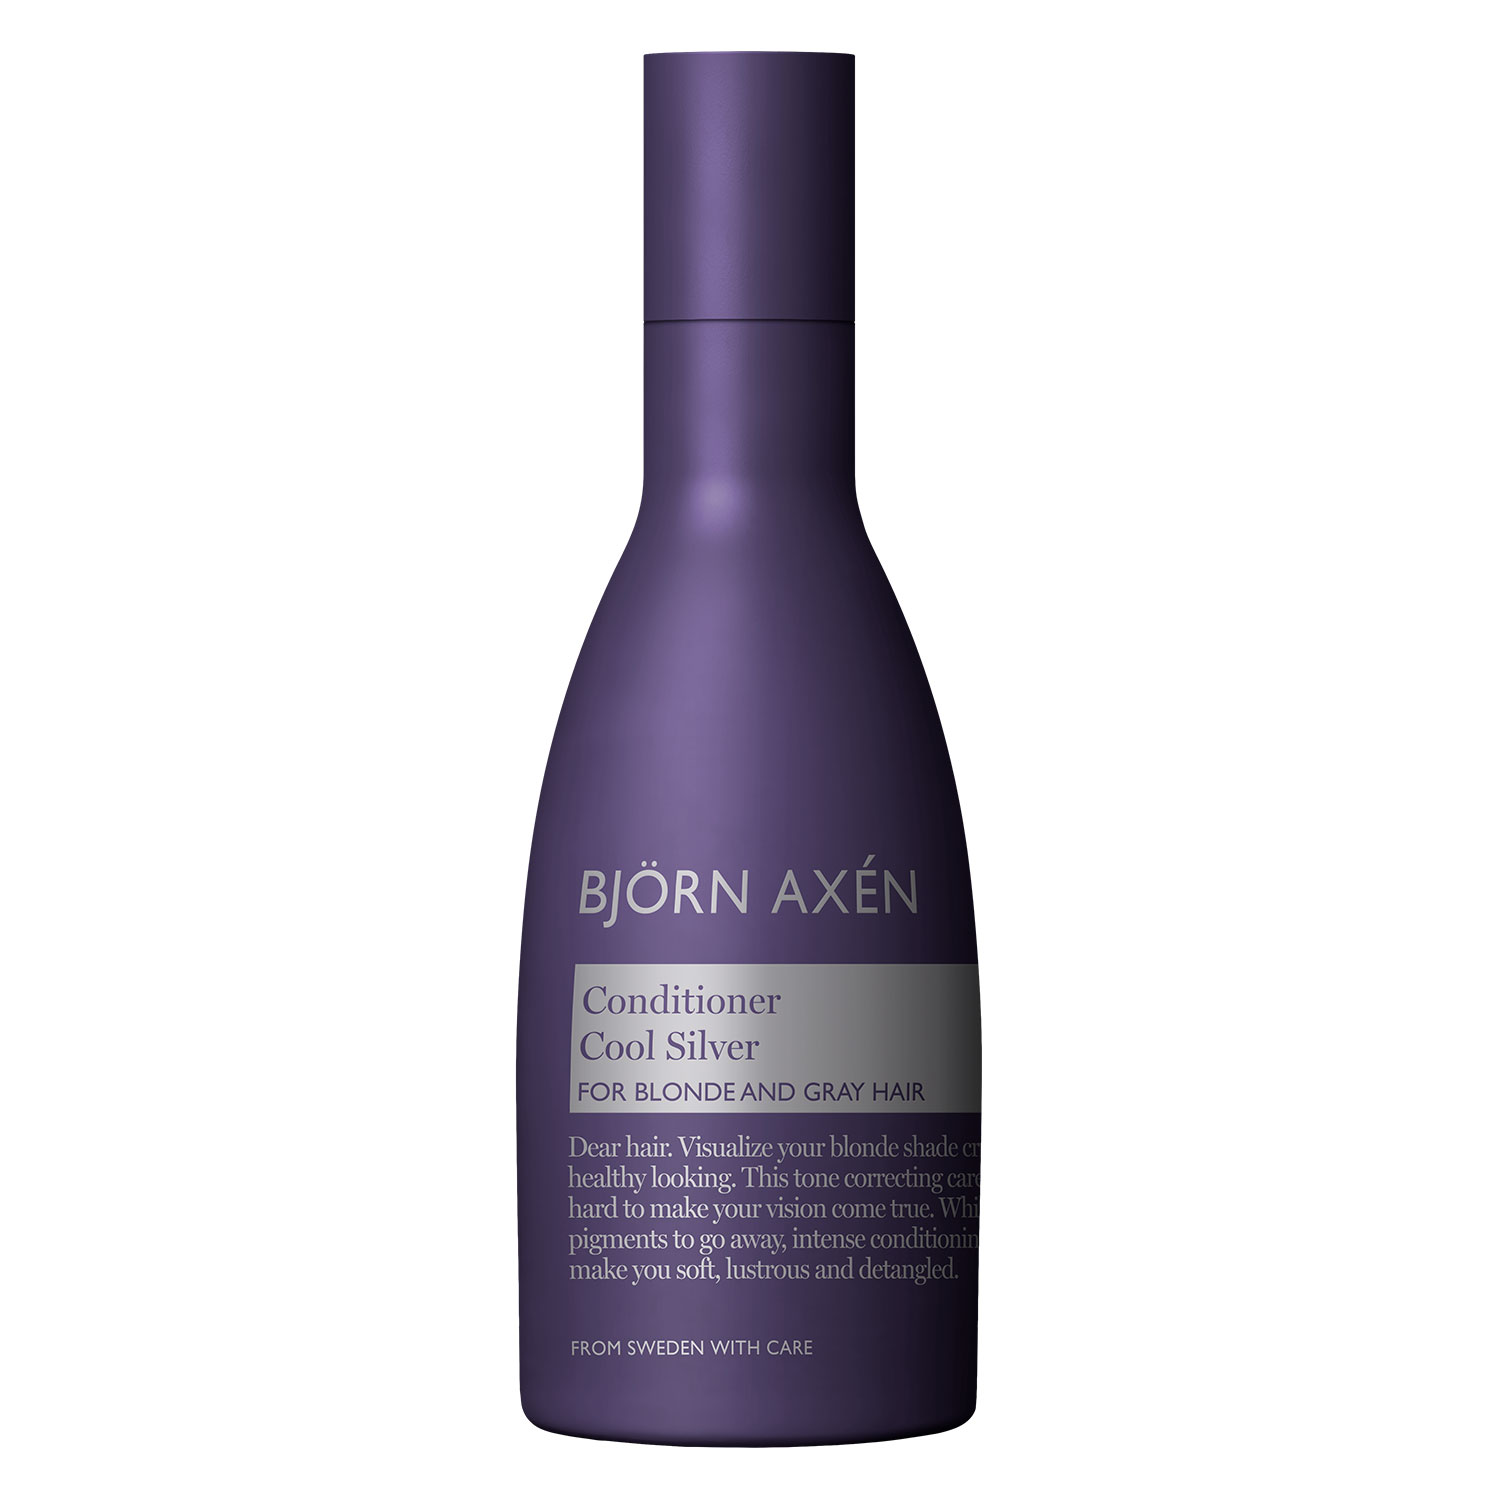 Björn Axén - Cool Silver Conditioner - 250ml